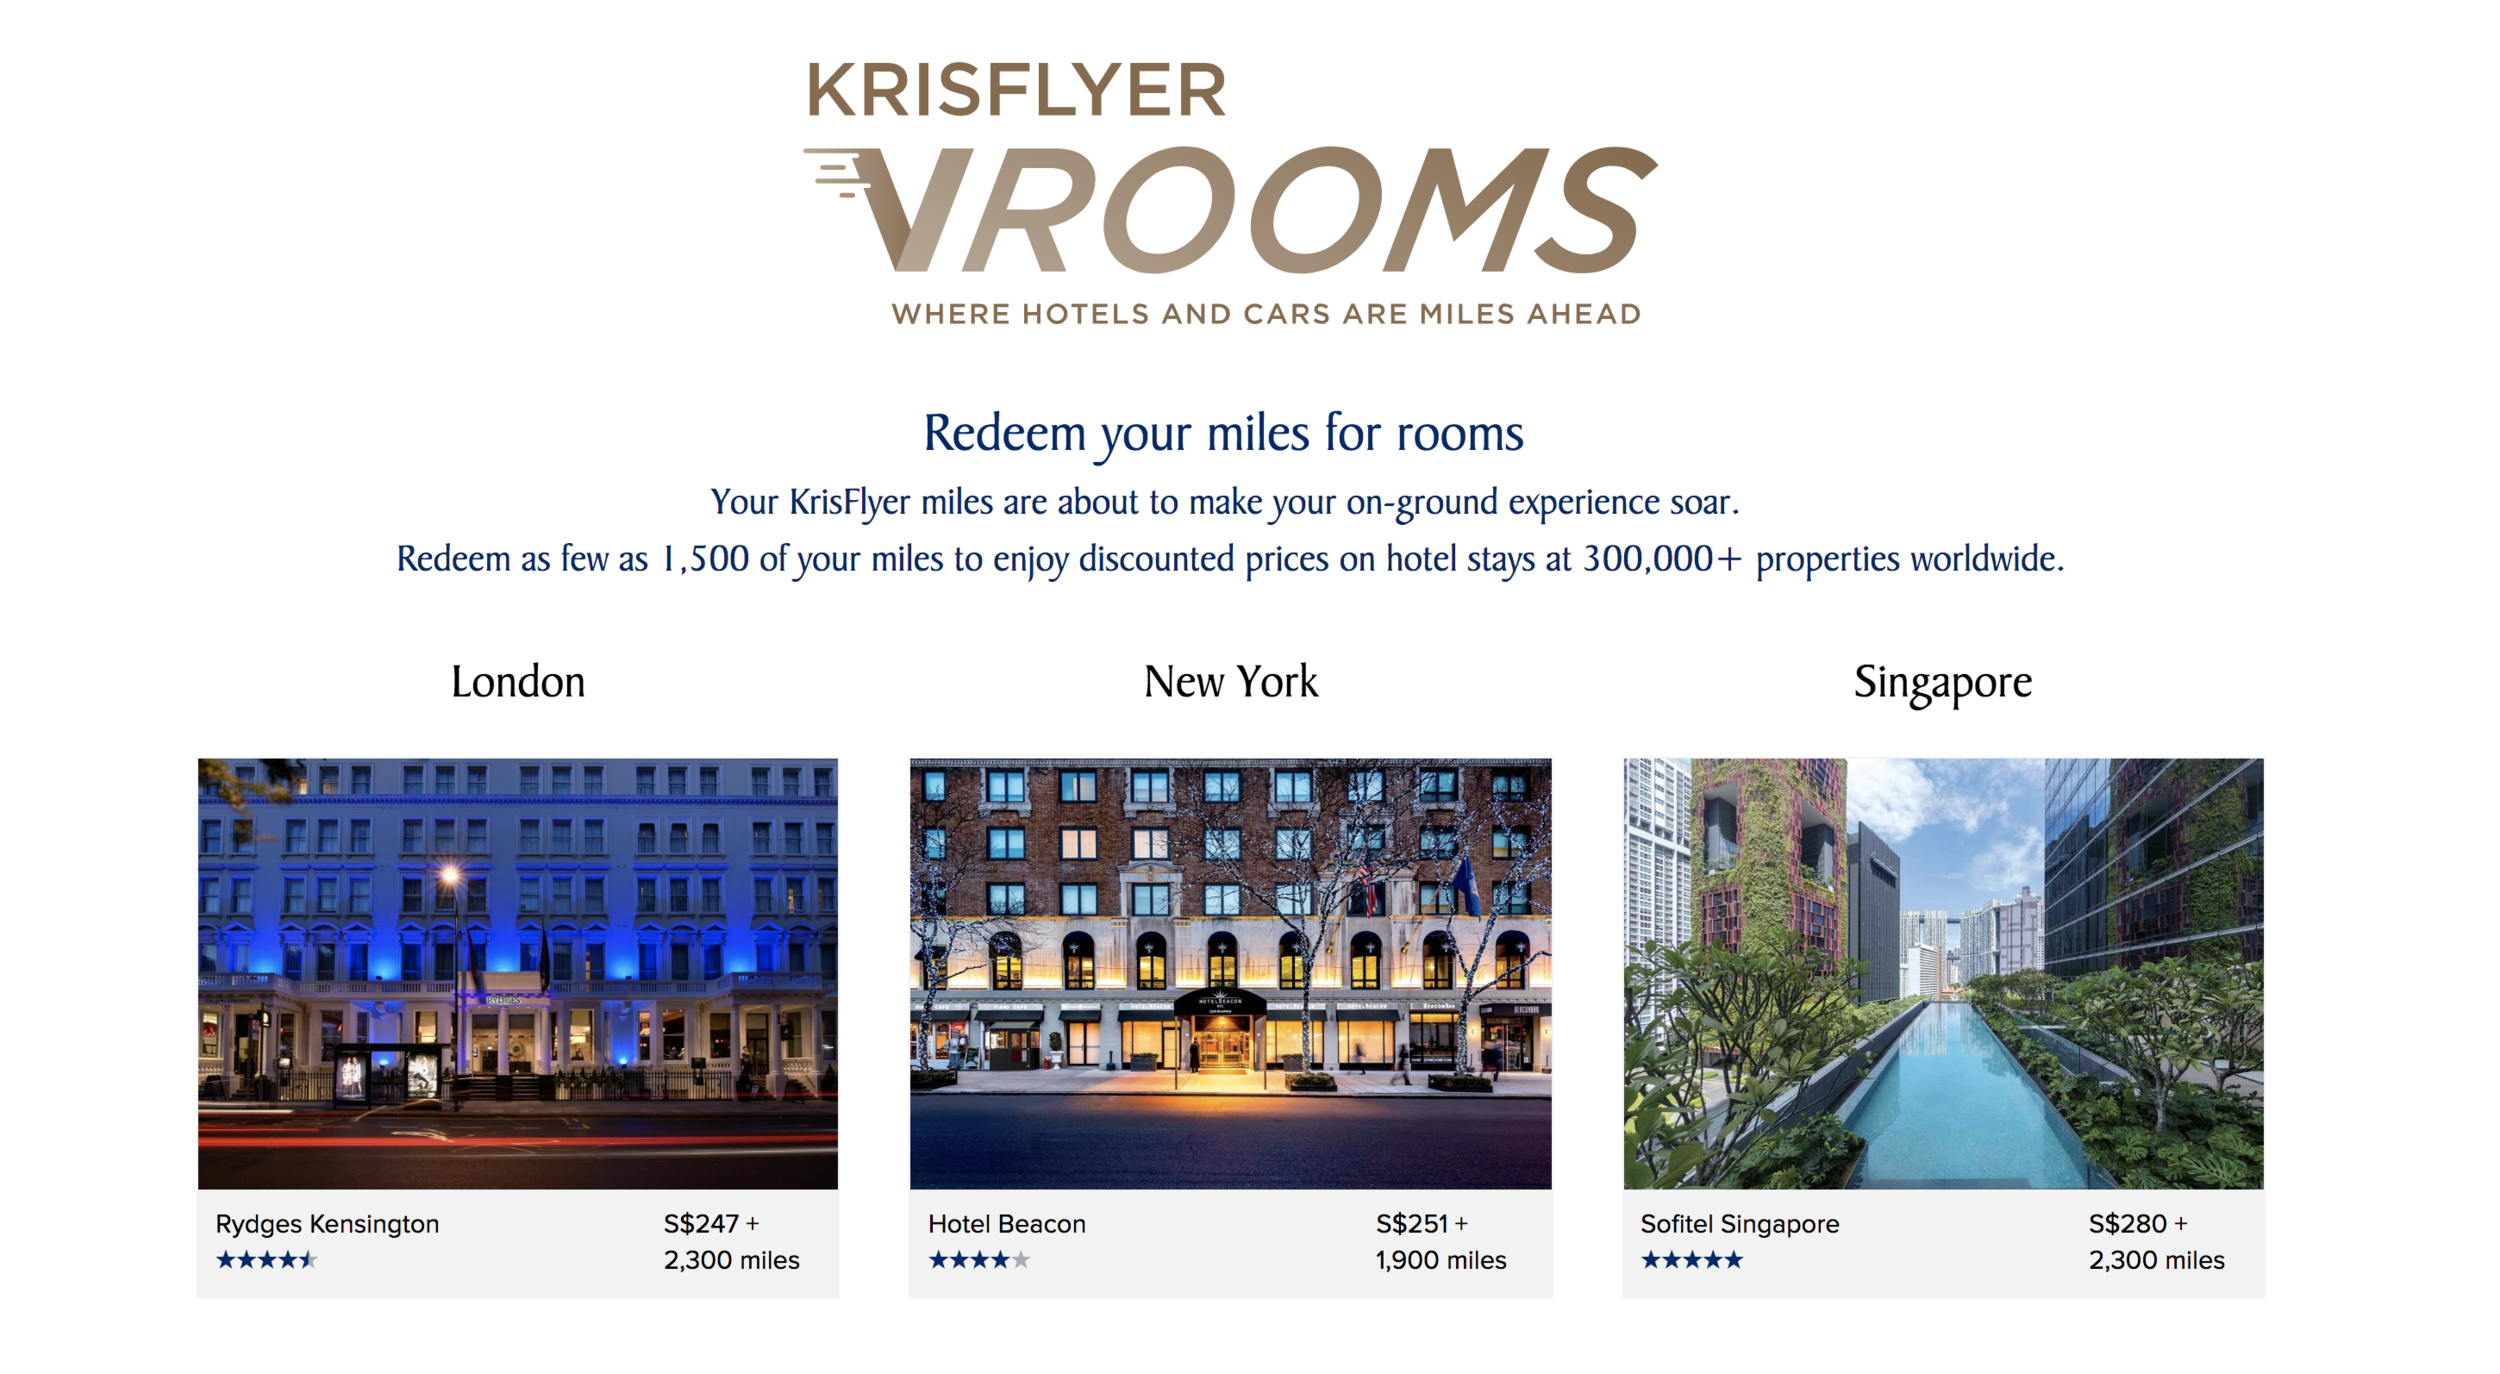 Krisflyer's new initiative allows members to redeem their hard-earned miles for hotel stays and car rentals